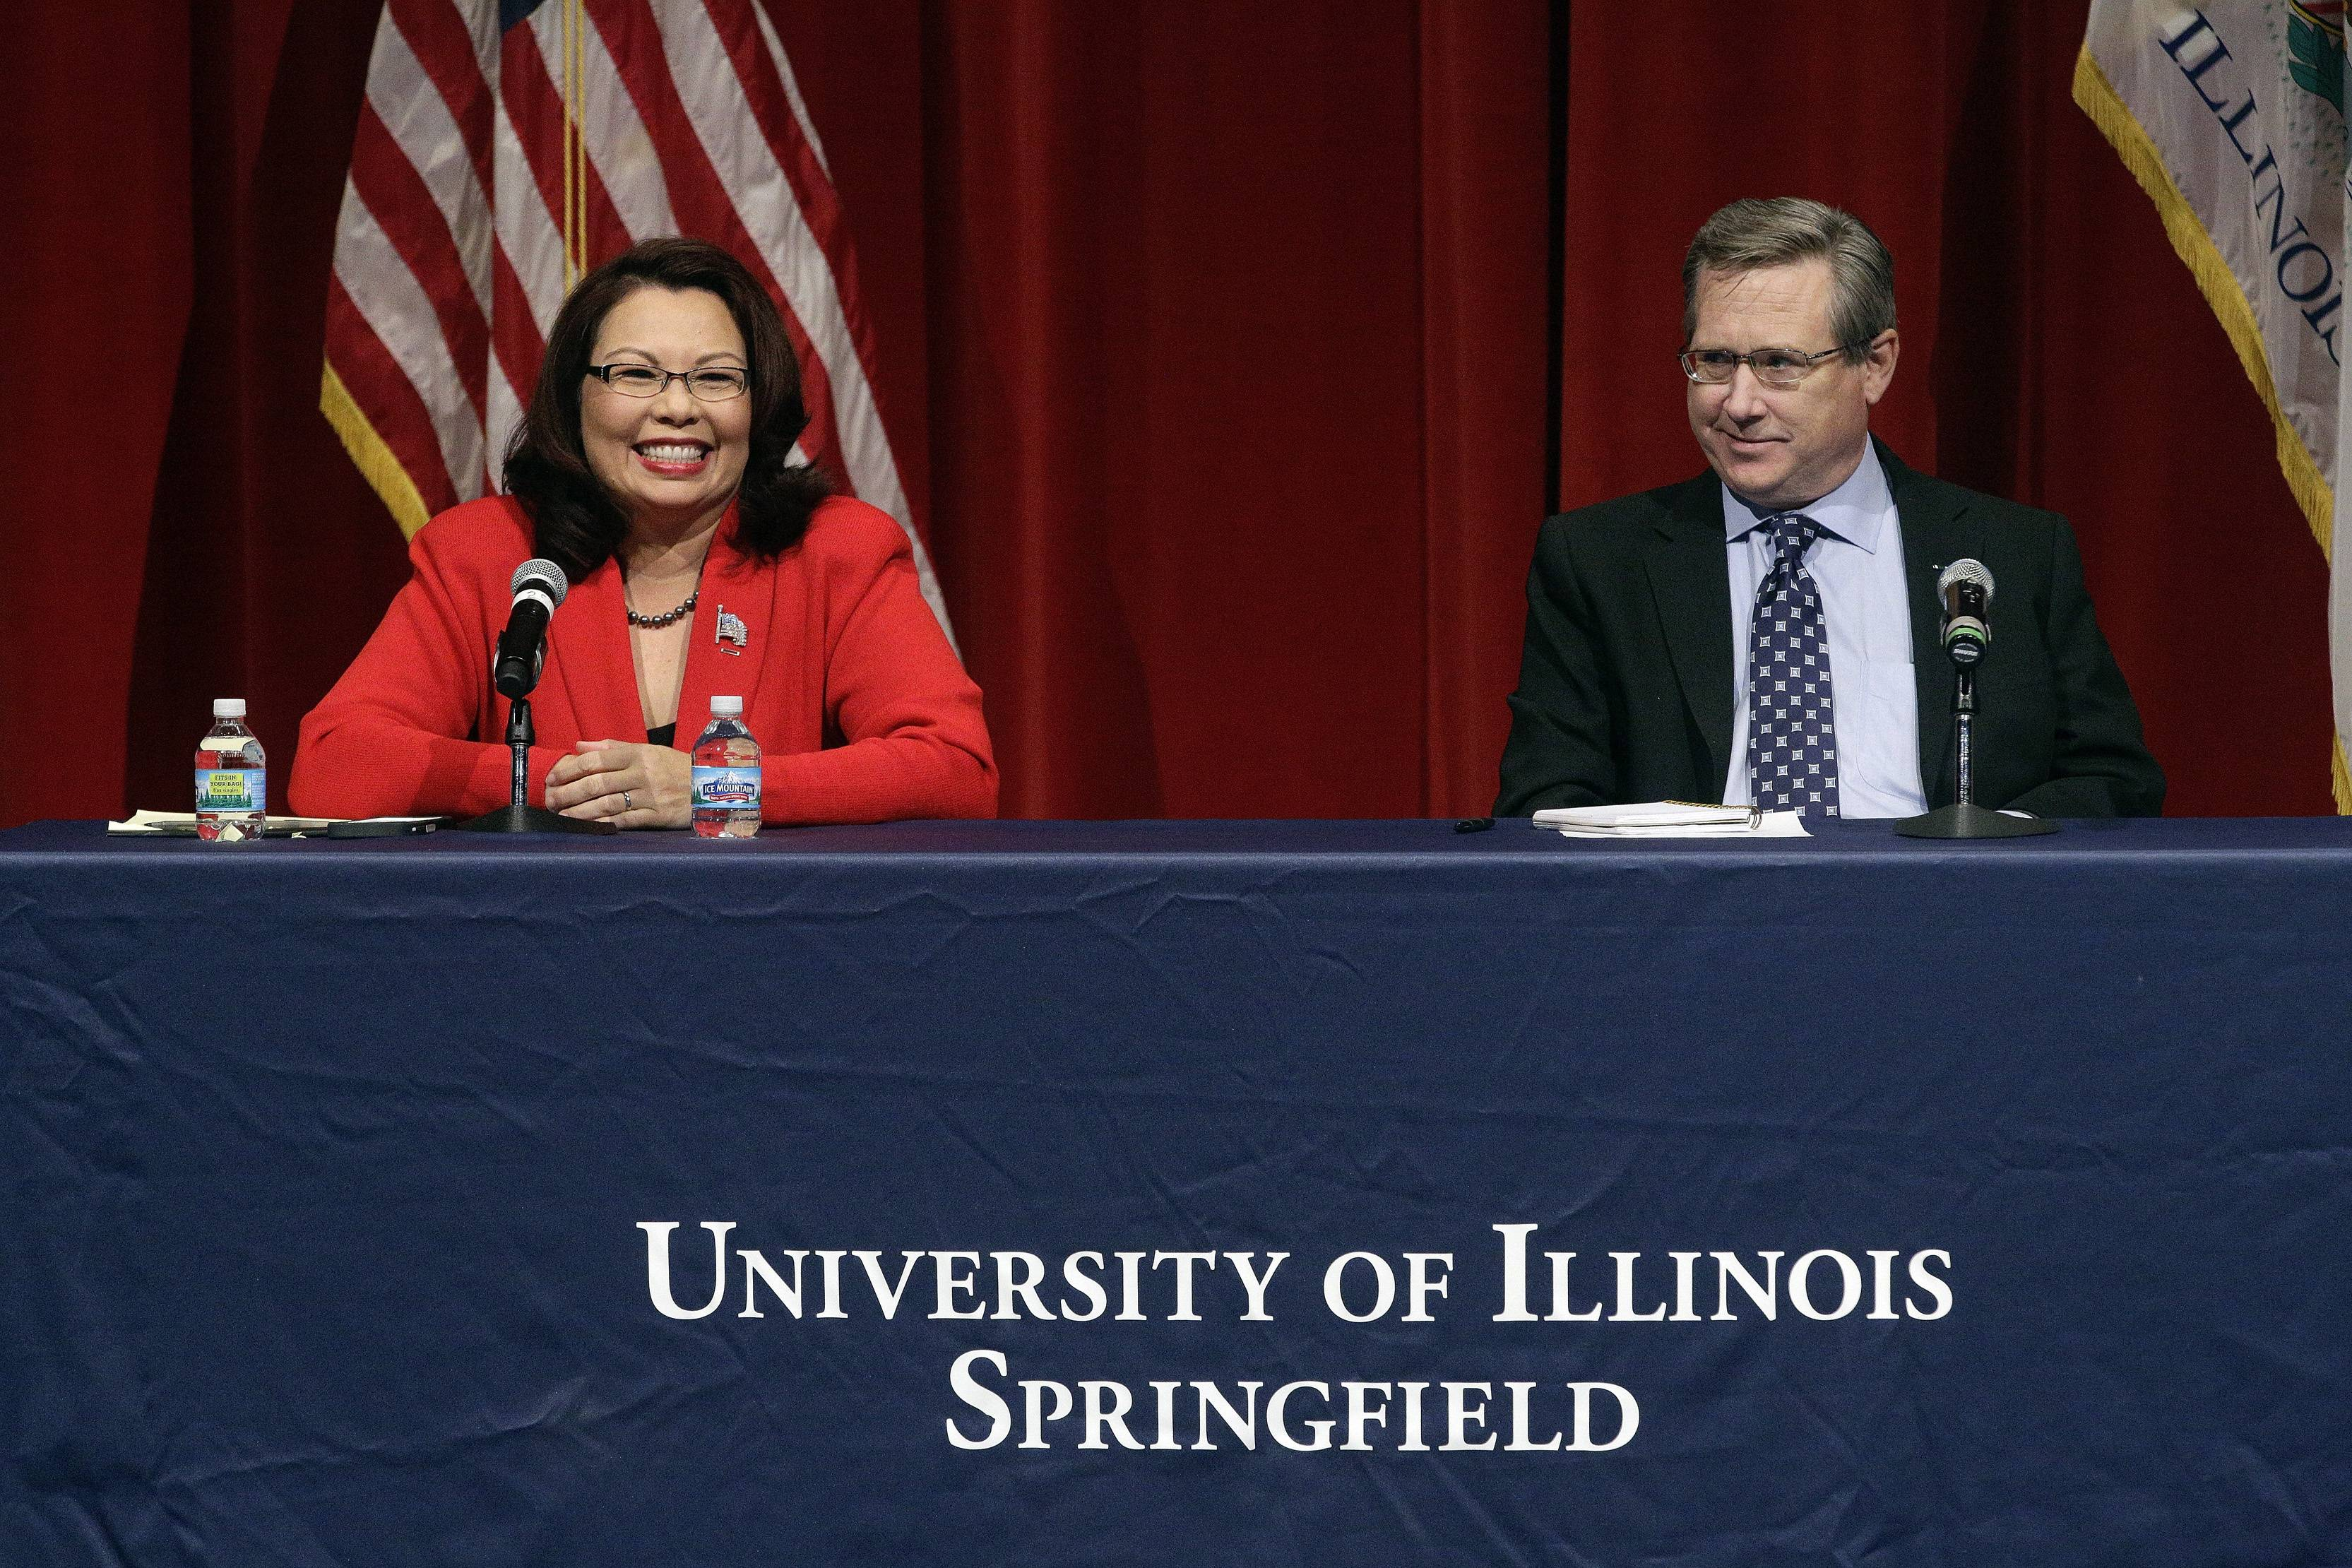 Republican U.S. Sen. Mark Kirk, right, and Democratic U.S. Rep. Tammy Duckworth, left, face off in their first televised debate in what's considered a crucial race that could determine which party controls the Senate, Thursday, Oct. 27, 2016, at the University of Illinois in Springfield, Ill.